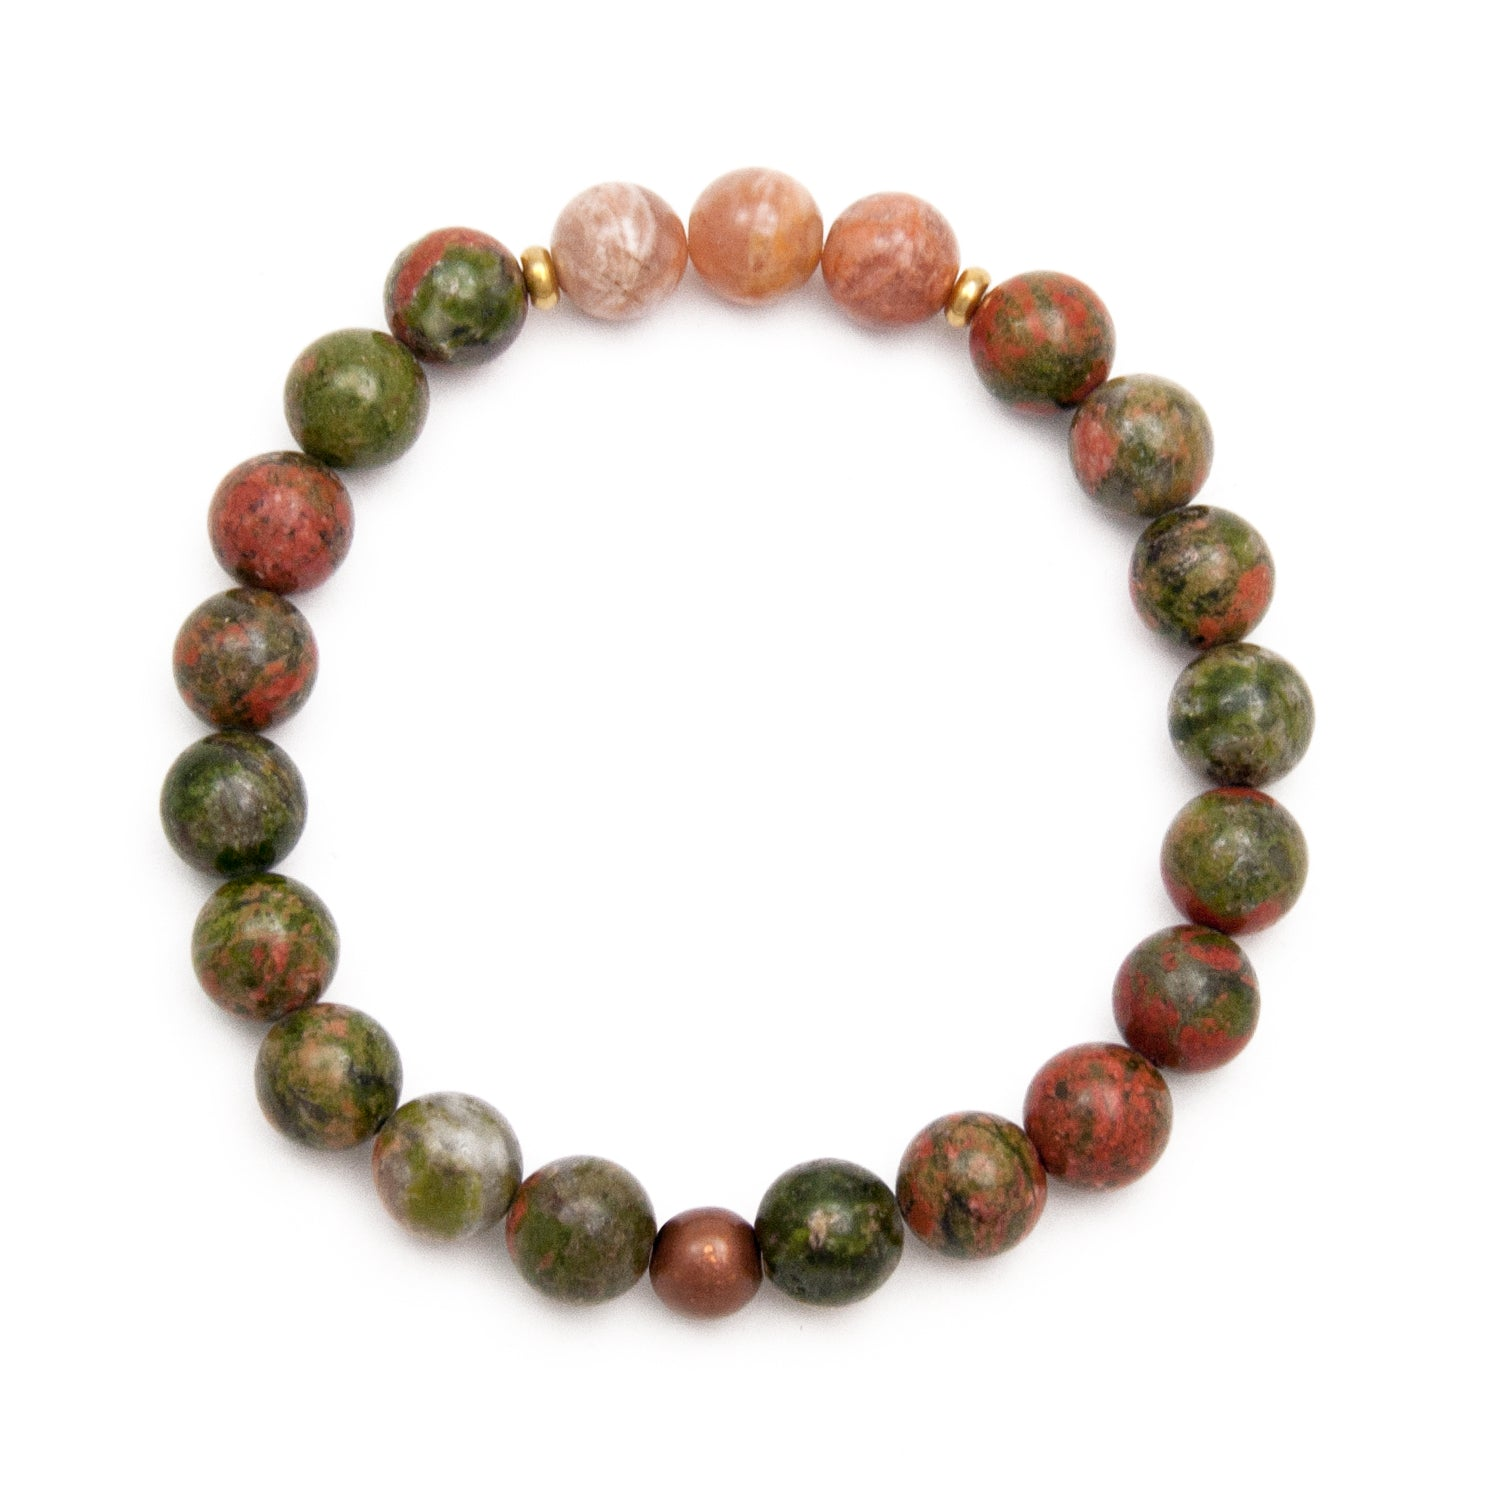 Happiness Bracelet - Sunstone & Unakite